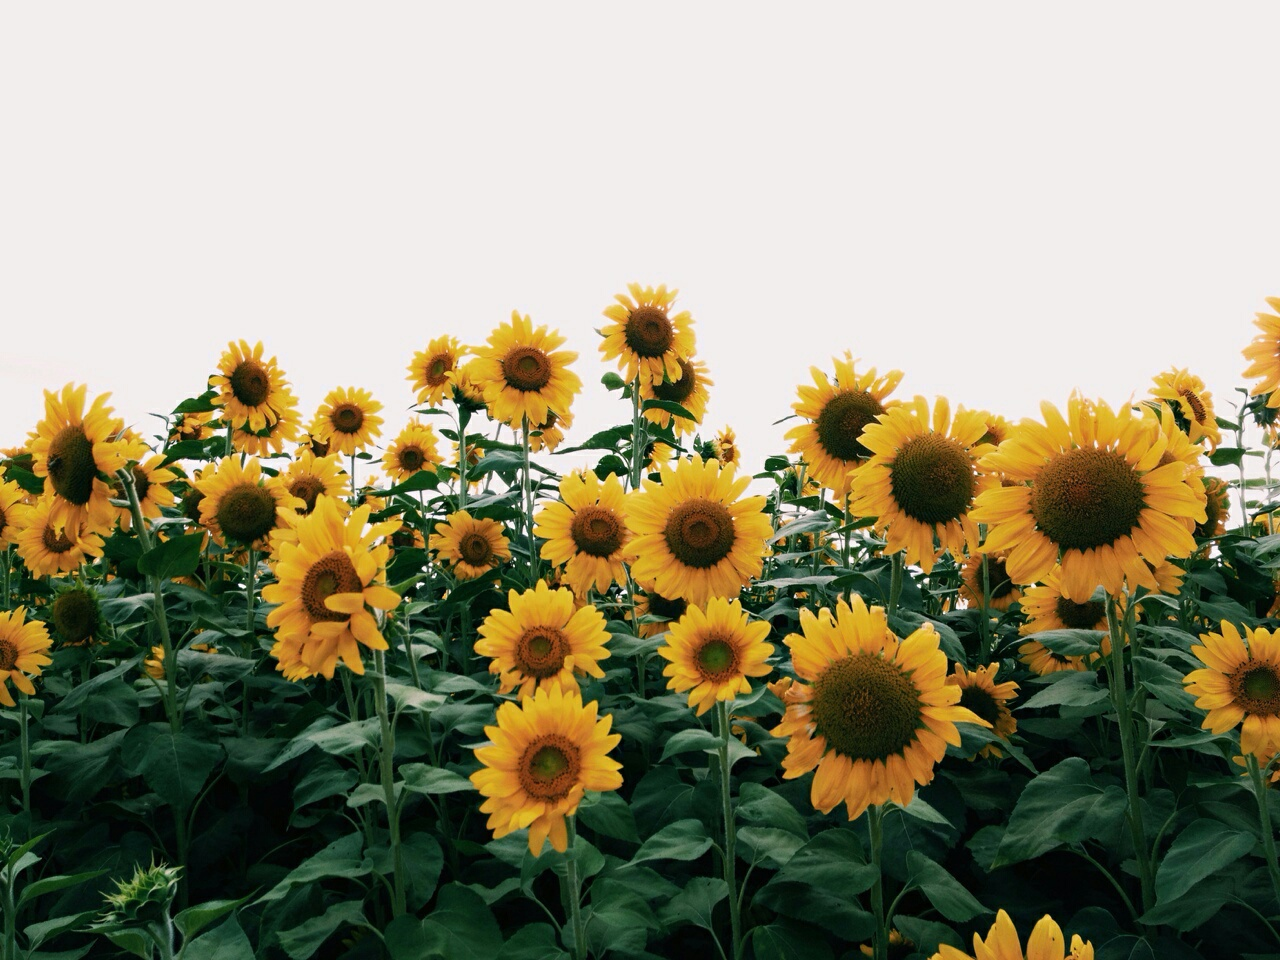 Aesthetic Pictures Of Sunflowers